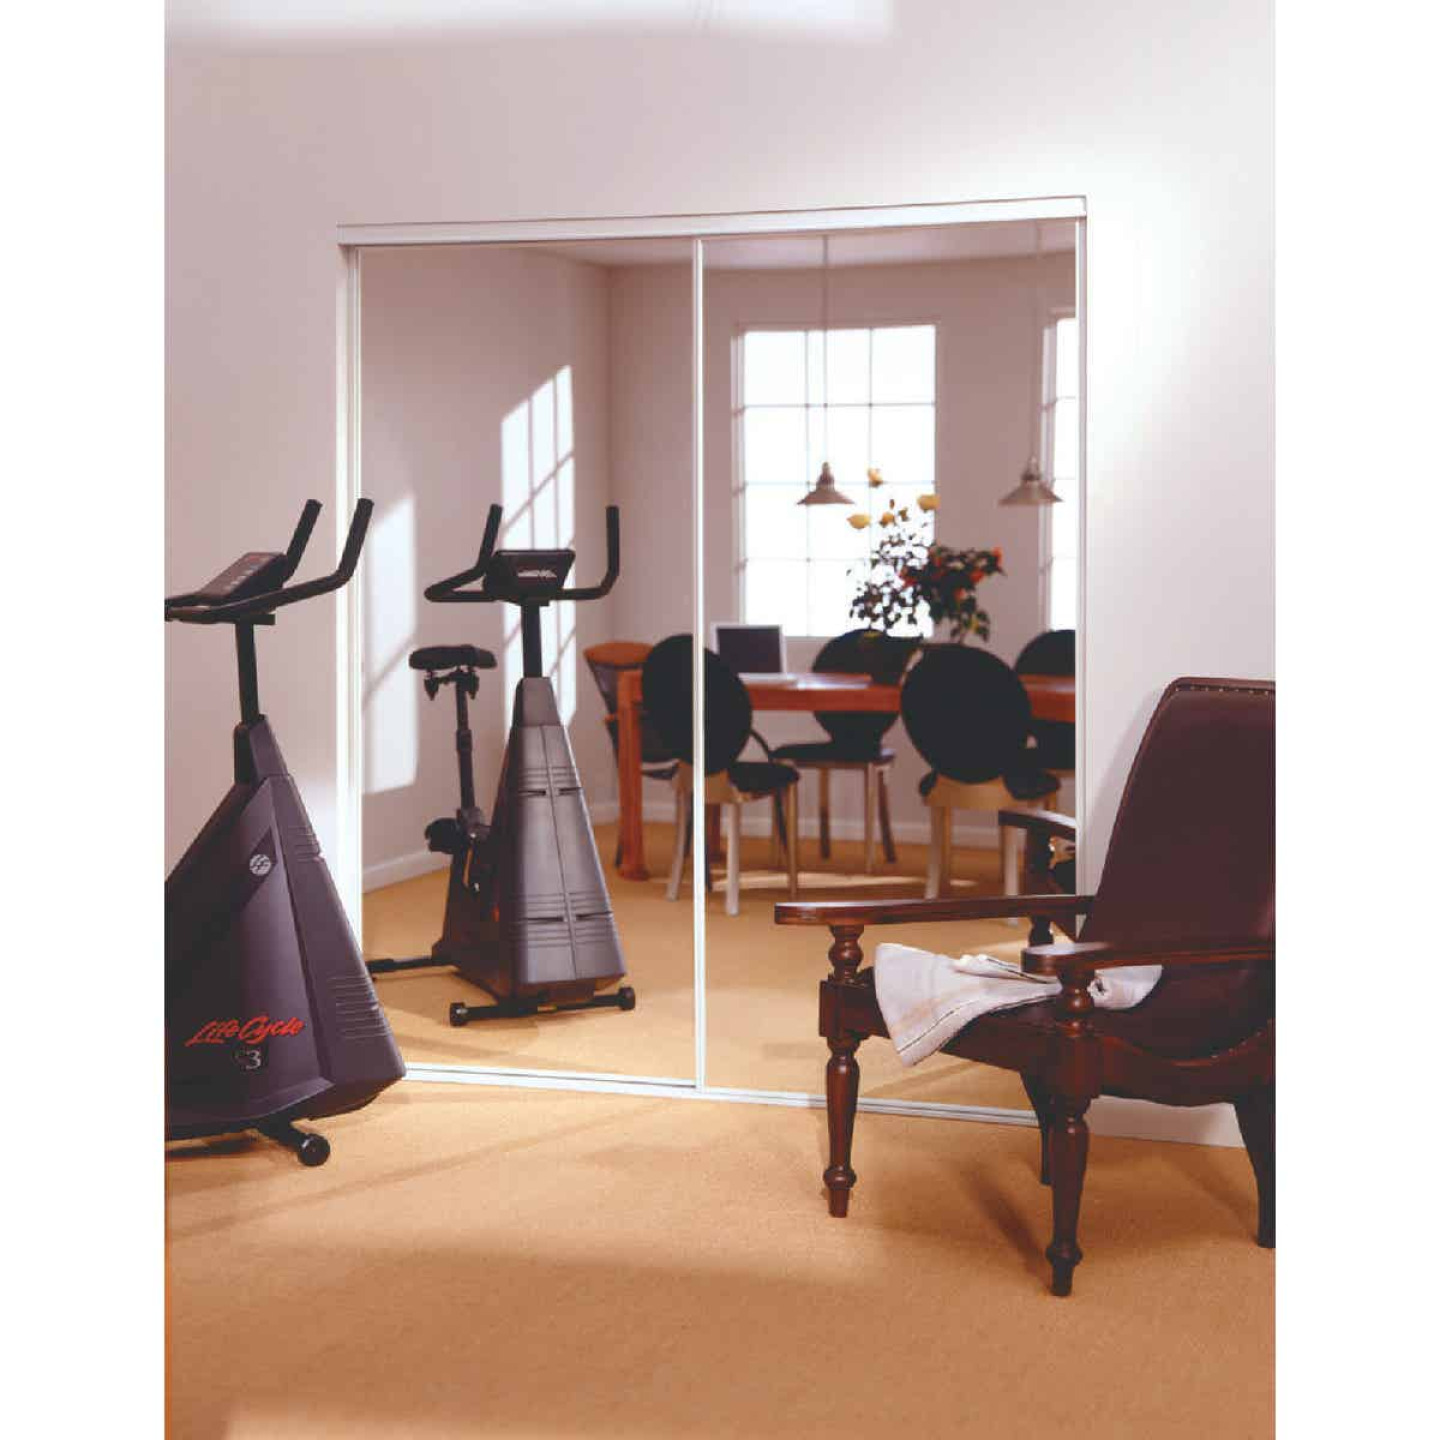 Erias 4260 Series 47 In. W. x 80-1/2 In. H. Bright White Bottom Roll Mirrored Bypass Door Image 1